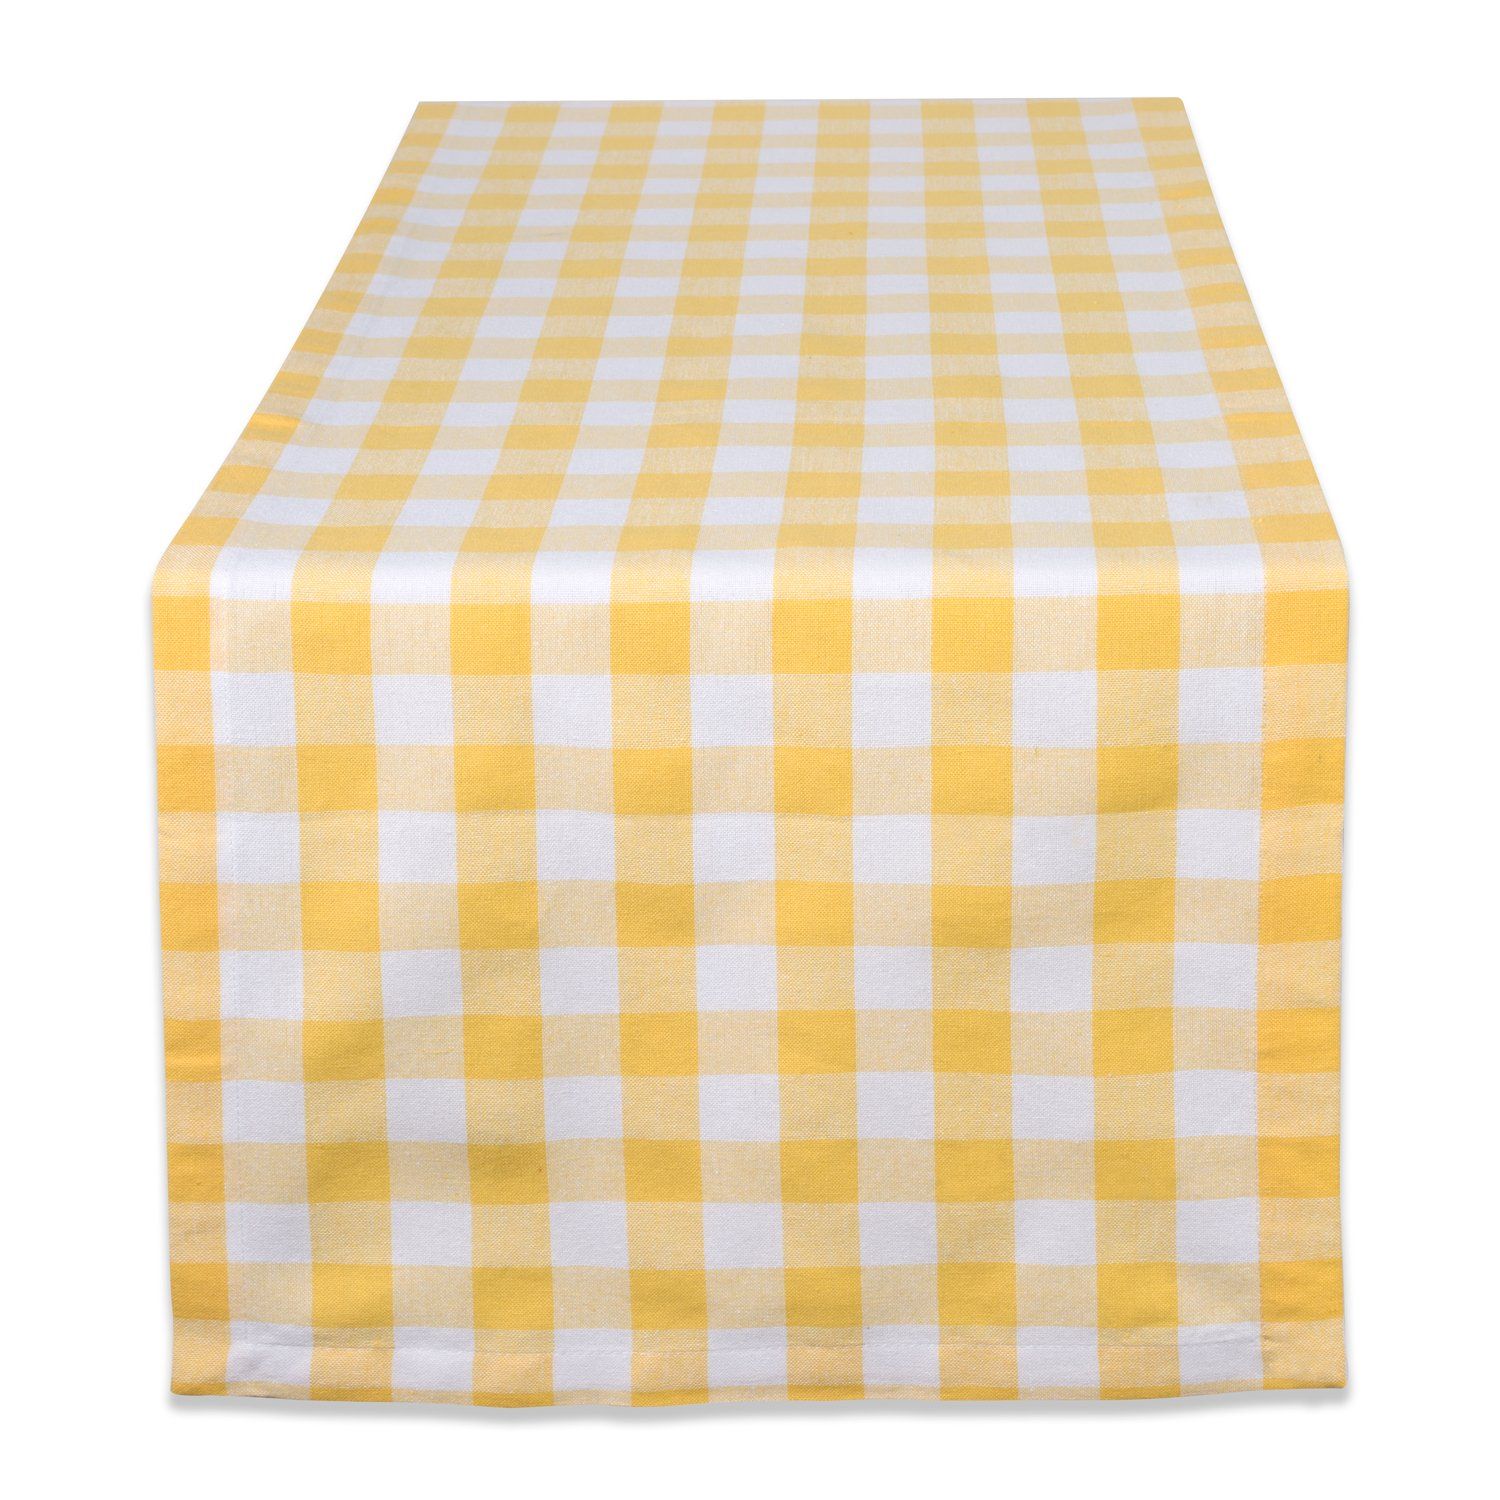 DII 100% Cotton, Machine Washable, Dinner, Everyday Use Table Runner, 14x72'' , Yellow & White Check by DII